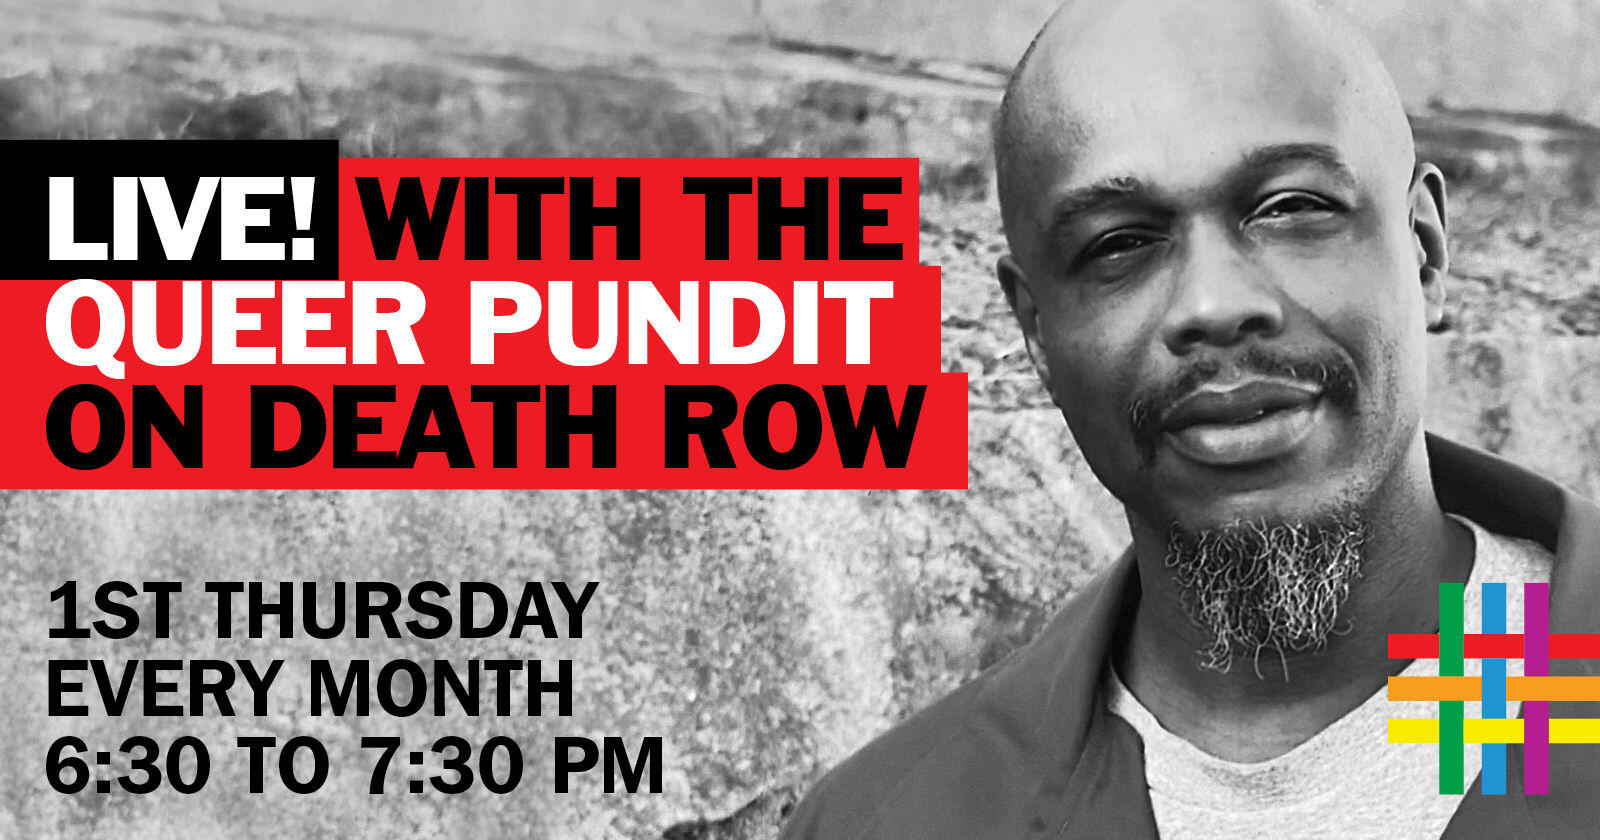 LIVE! with the Queer Pundit on Death Row at Brooklyn Community Pride Center